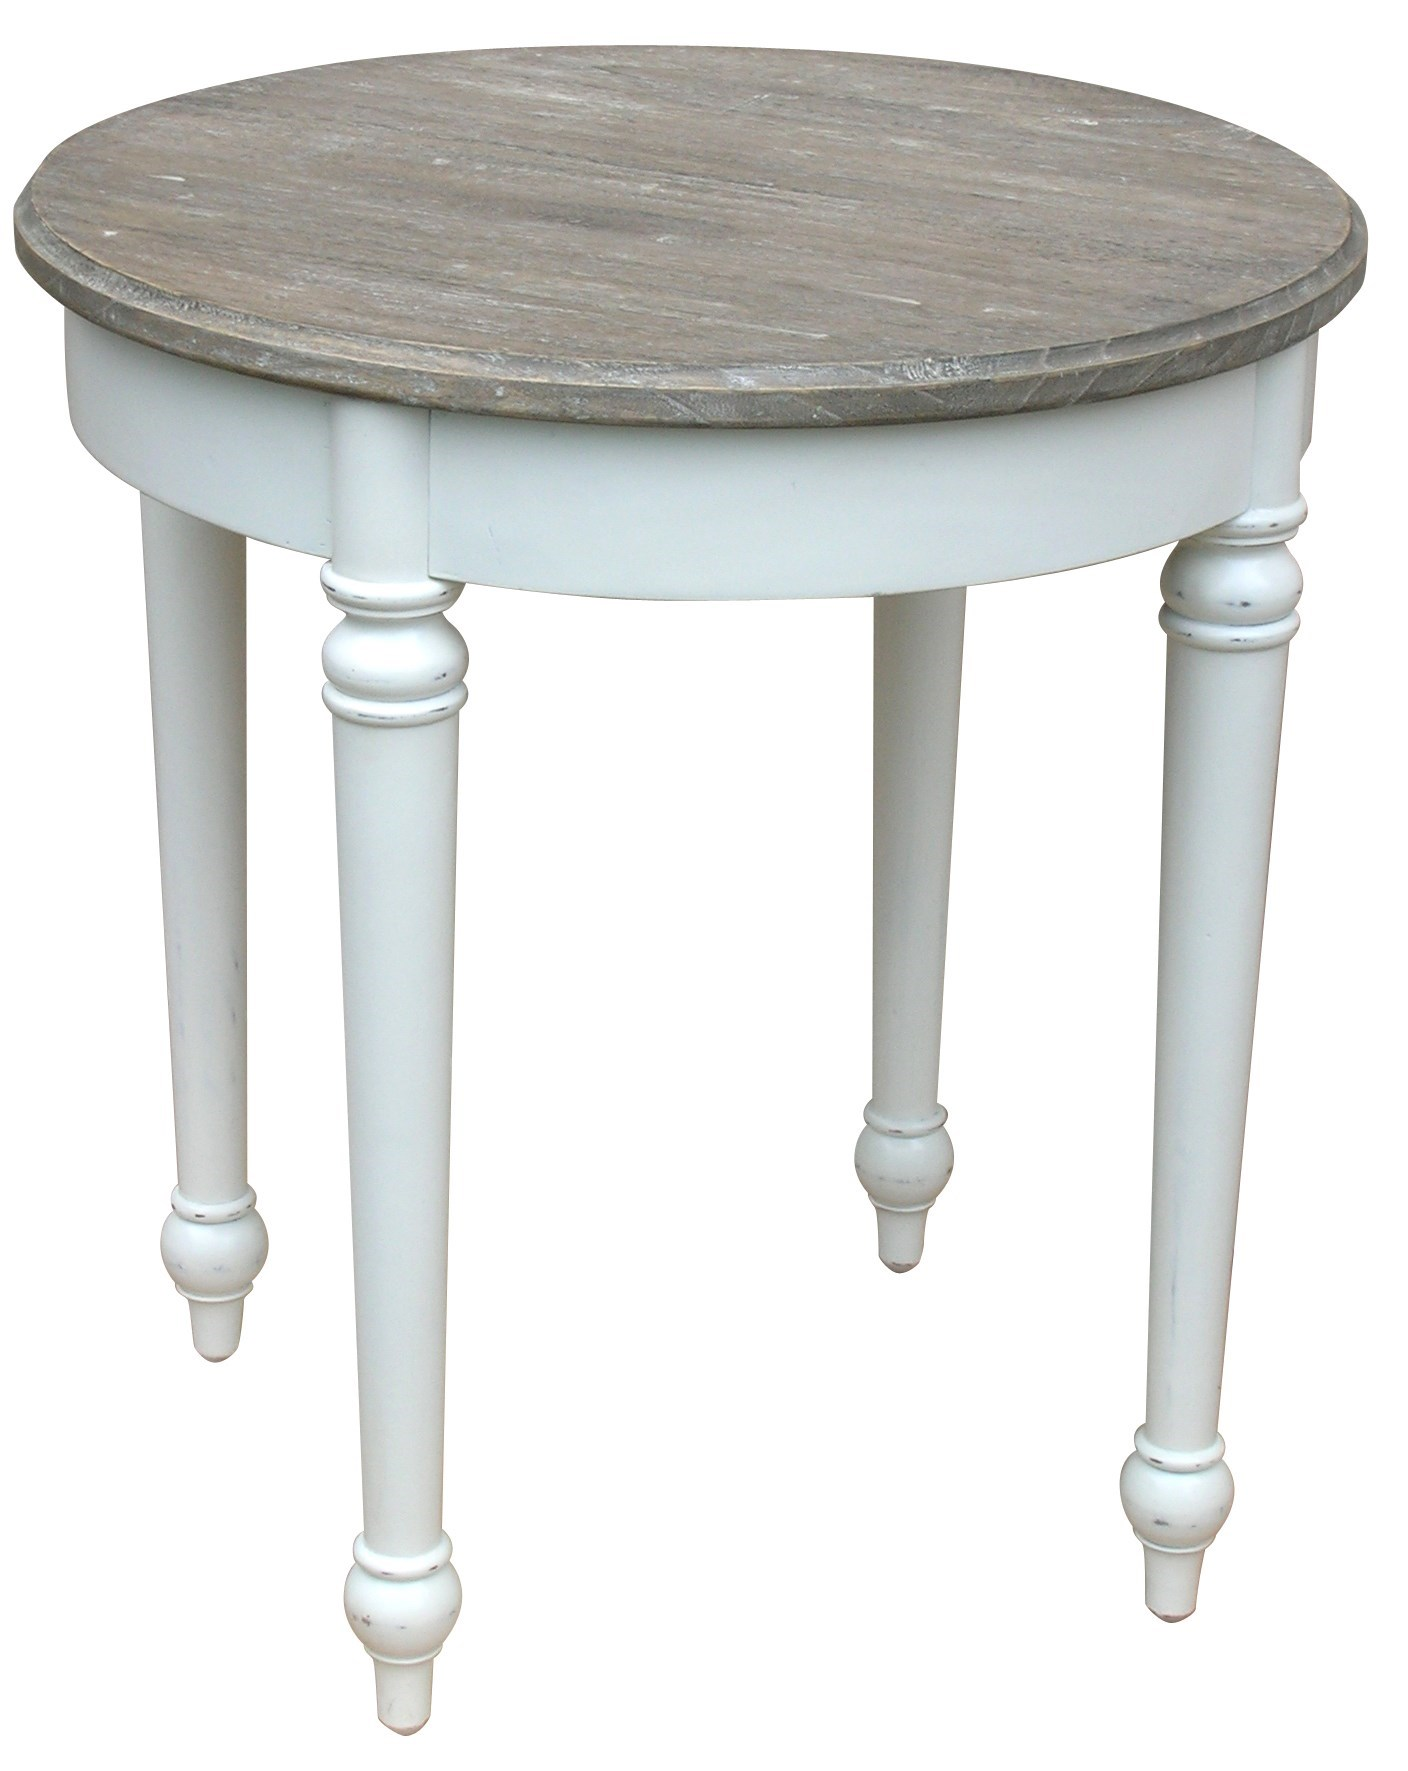 occasional table groups tradewinds furniture accent avalon round best home decor items narrow with drawer glass side end tables ikea coffee outdoor gold coast christmas runner